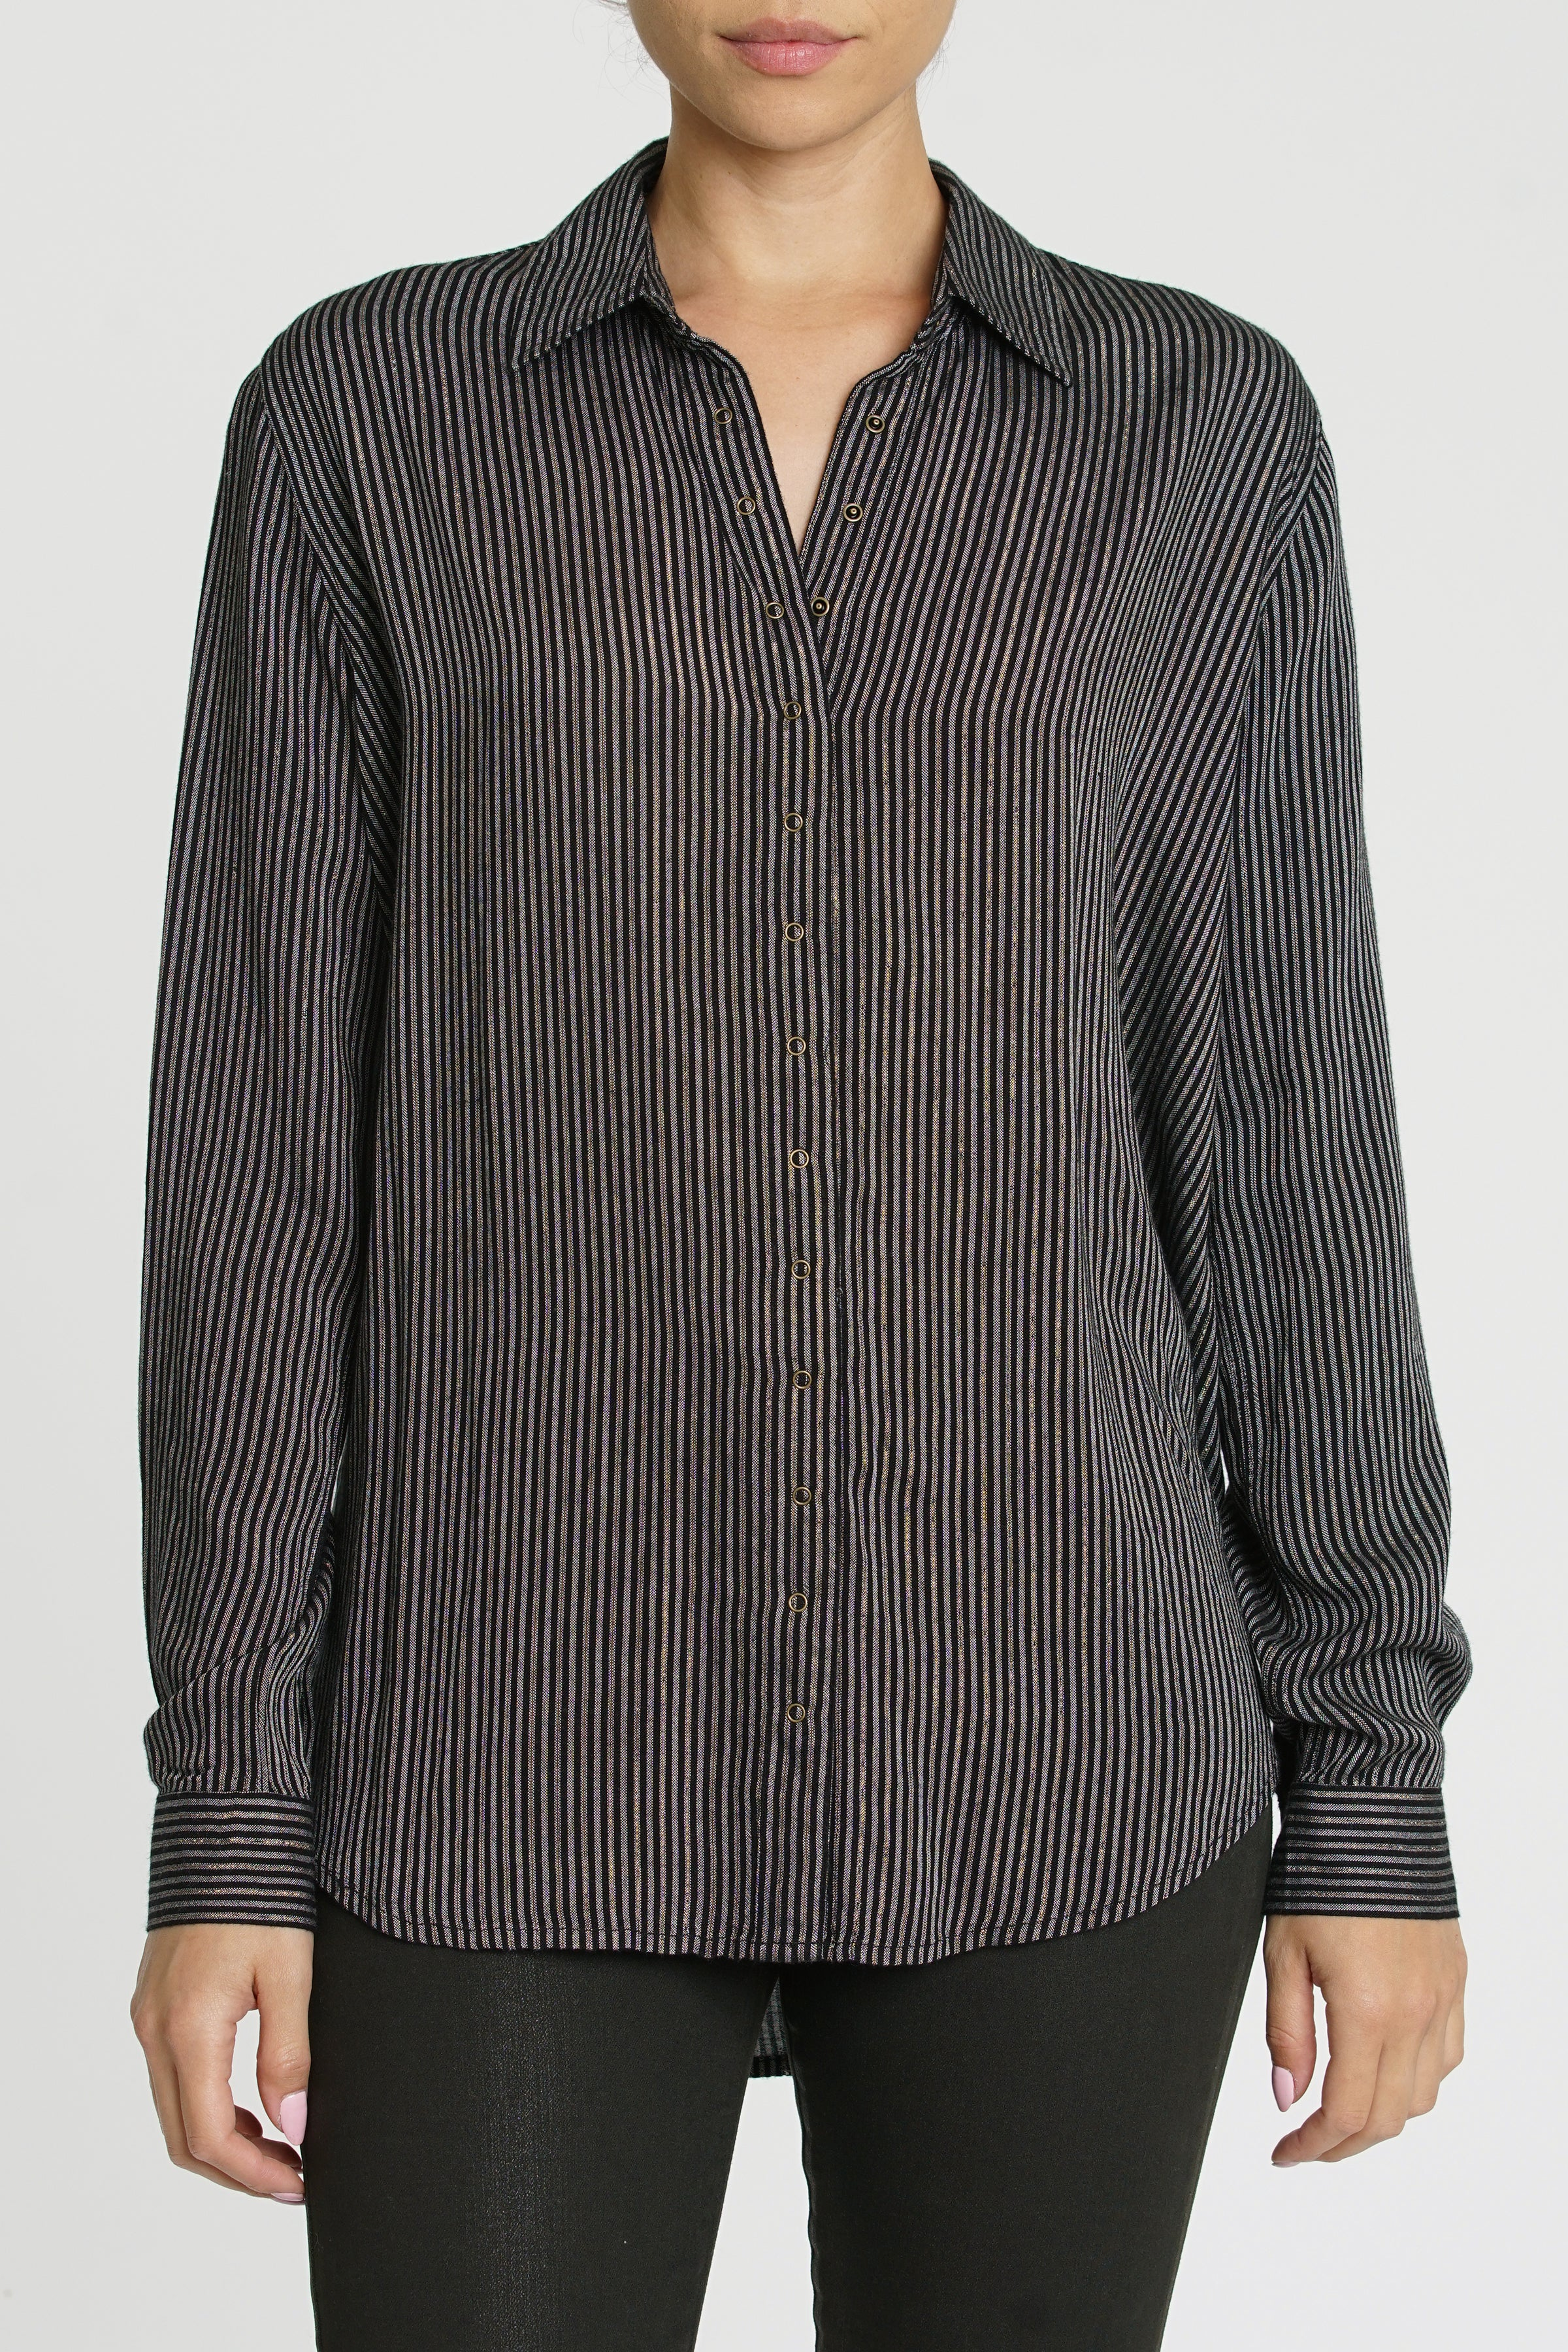 Elle Metallic Stripe Long Sleeve Babysnap Shirt - Disco Stripe